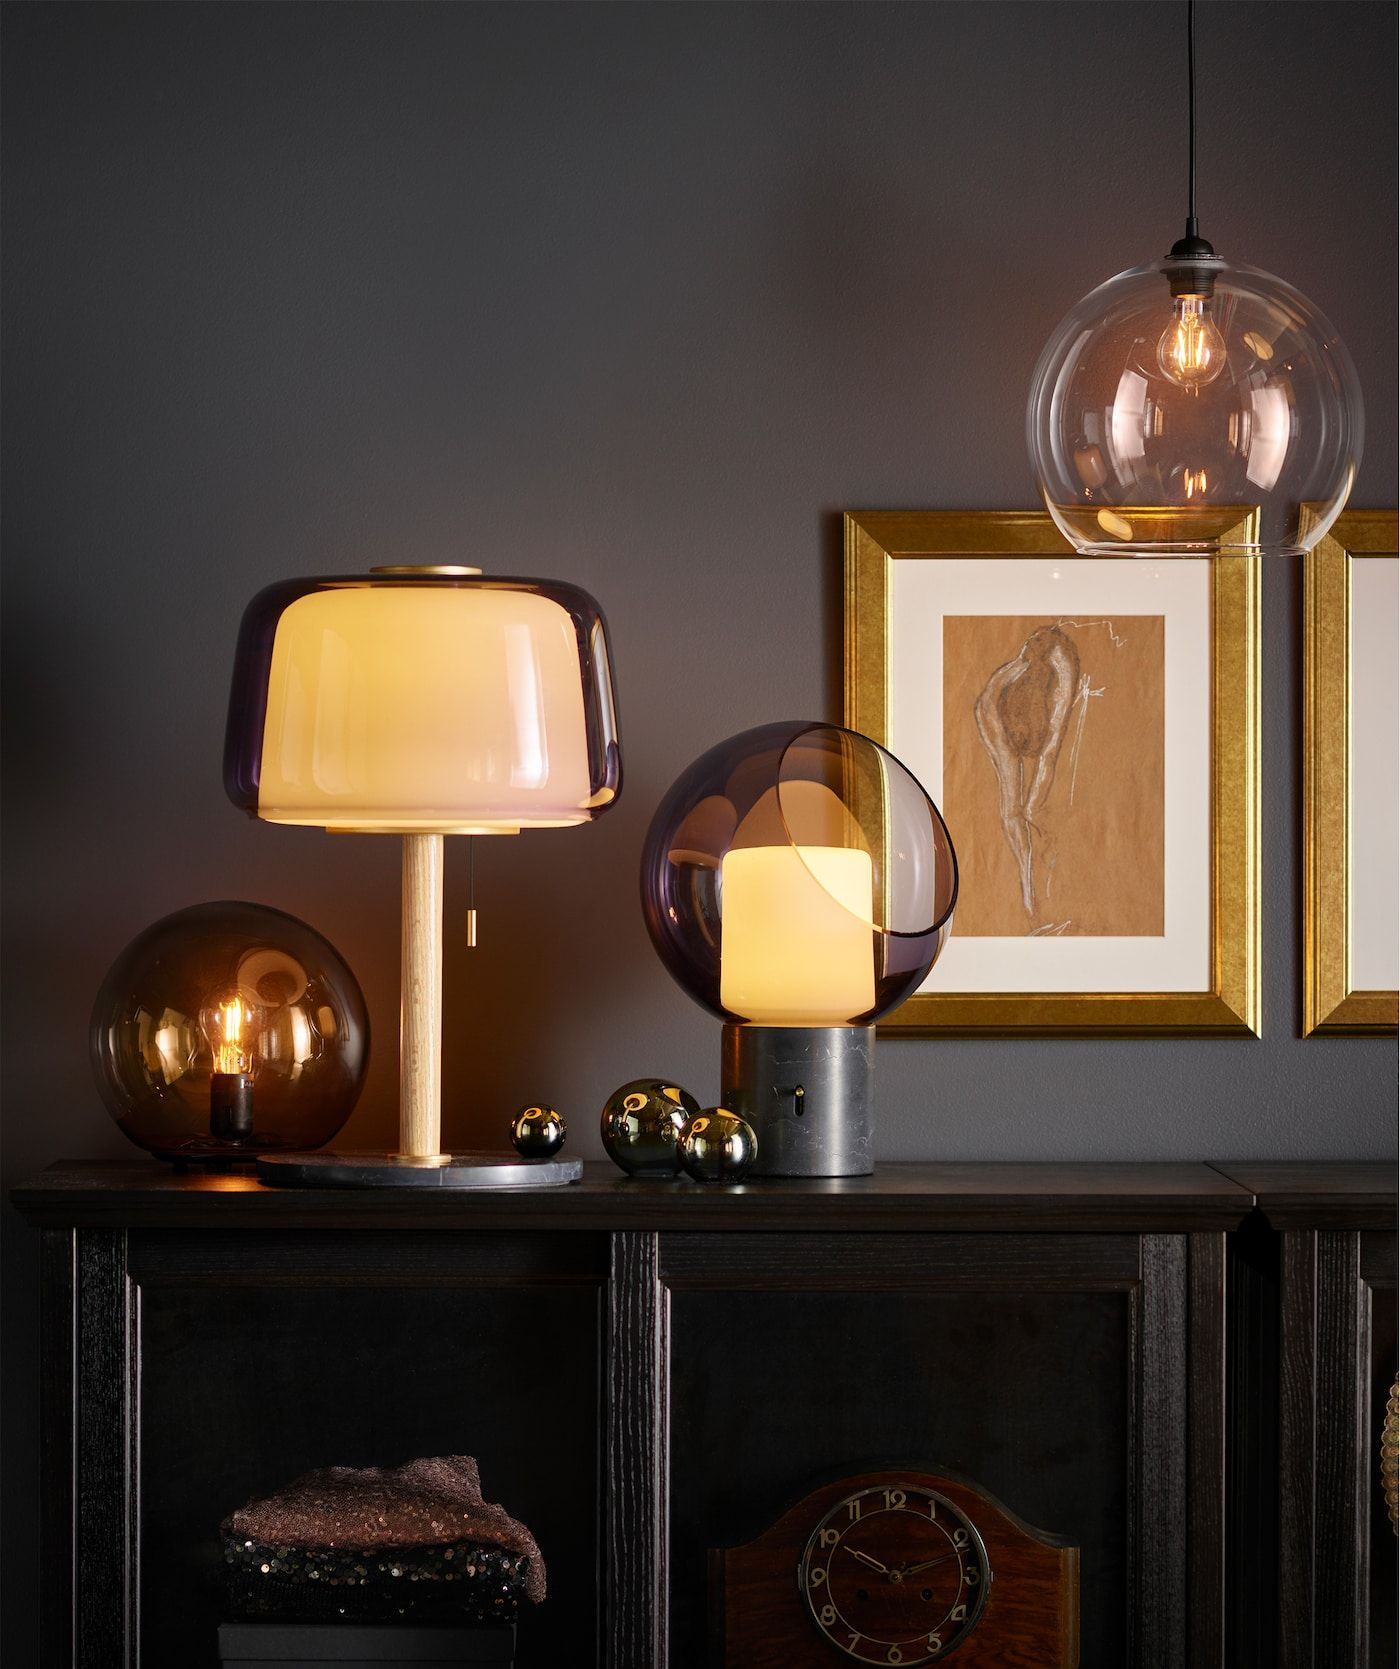 The Soft Glow Of Ikea Evedal And Fado Table Lamps Sets An Intimate Yet Elegant Mood